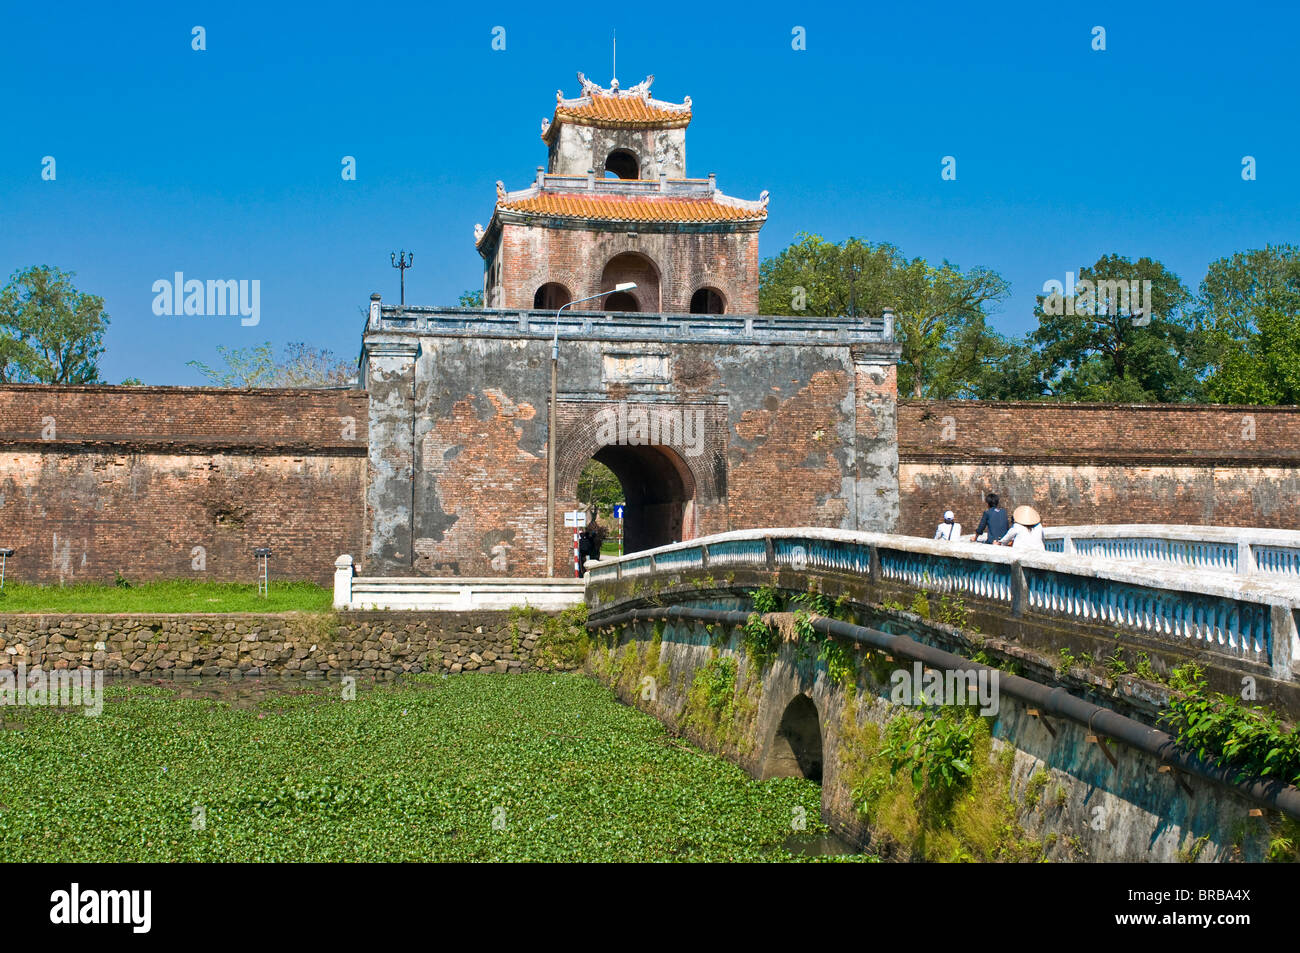 entrance gate to the citadel hue vietnam indochina southeast stock photo royalty free image. Black Bedroom Furniture Sets. Home Design Ideas